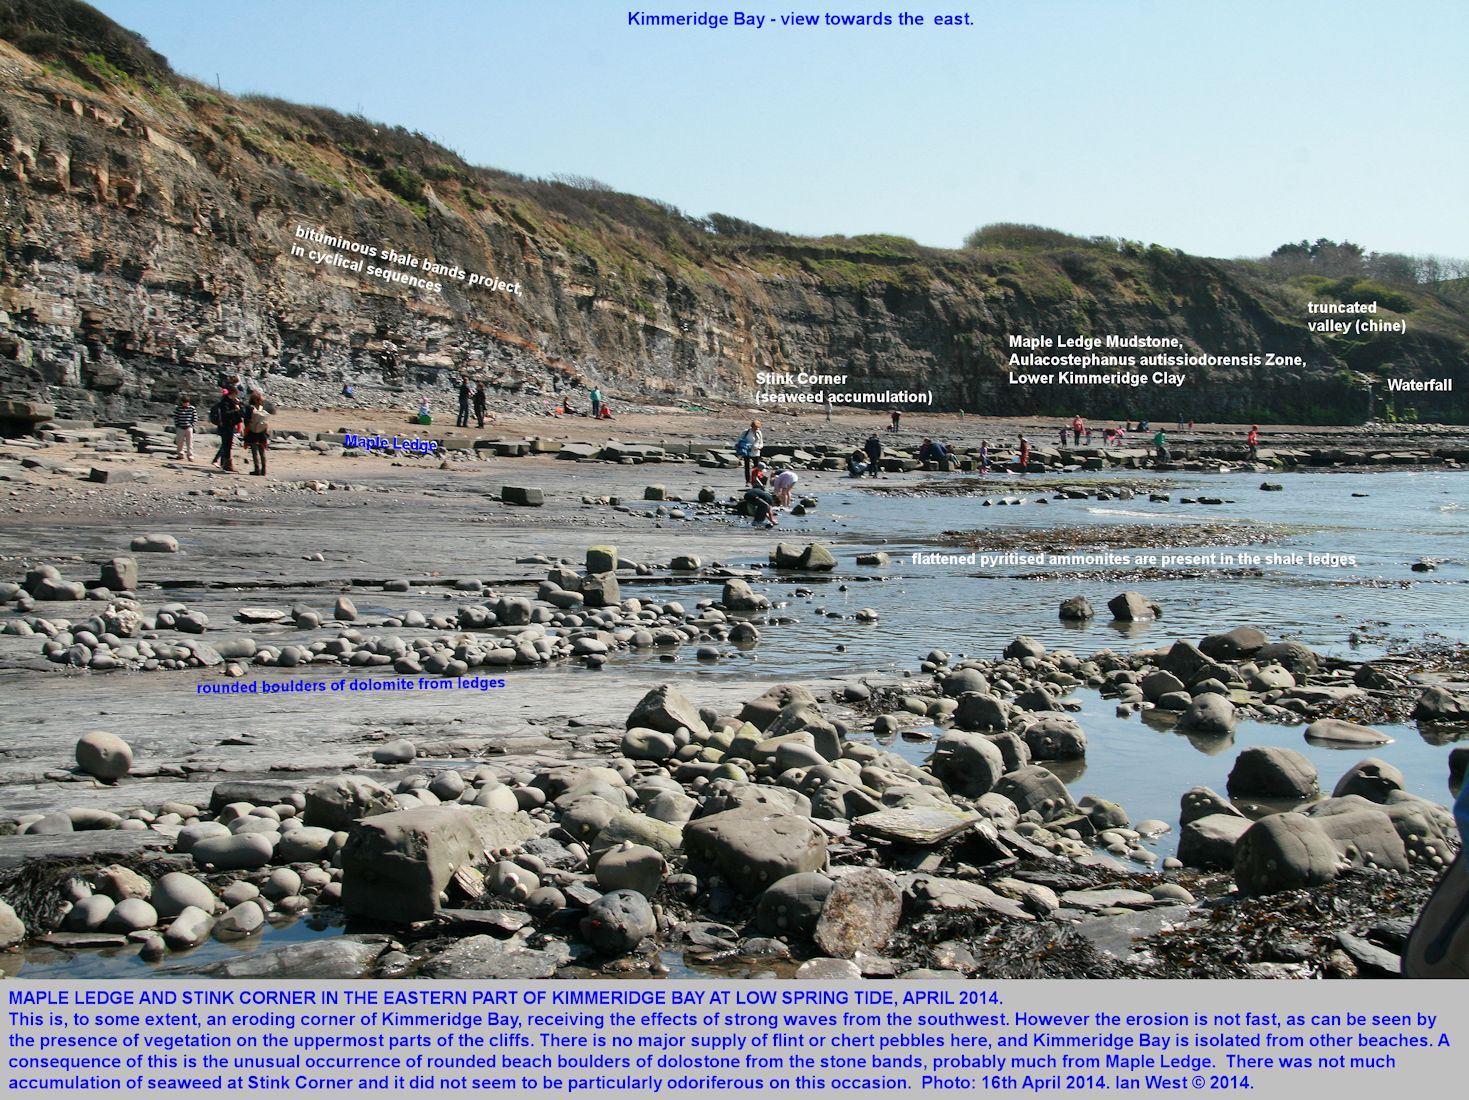 The eastern corner of Kimmeridge Bay, Dorset, with Maple Ledge and Corner, at low spring tide, 16th April 2014